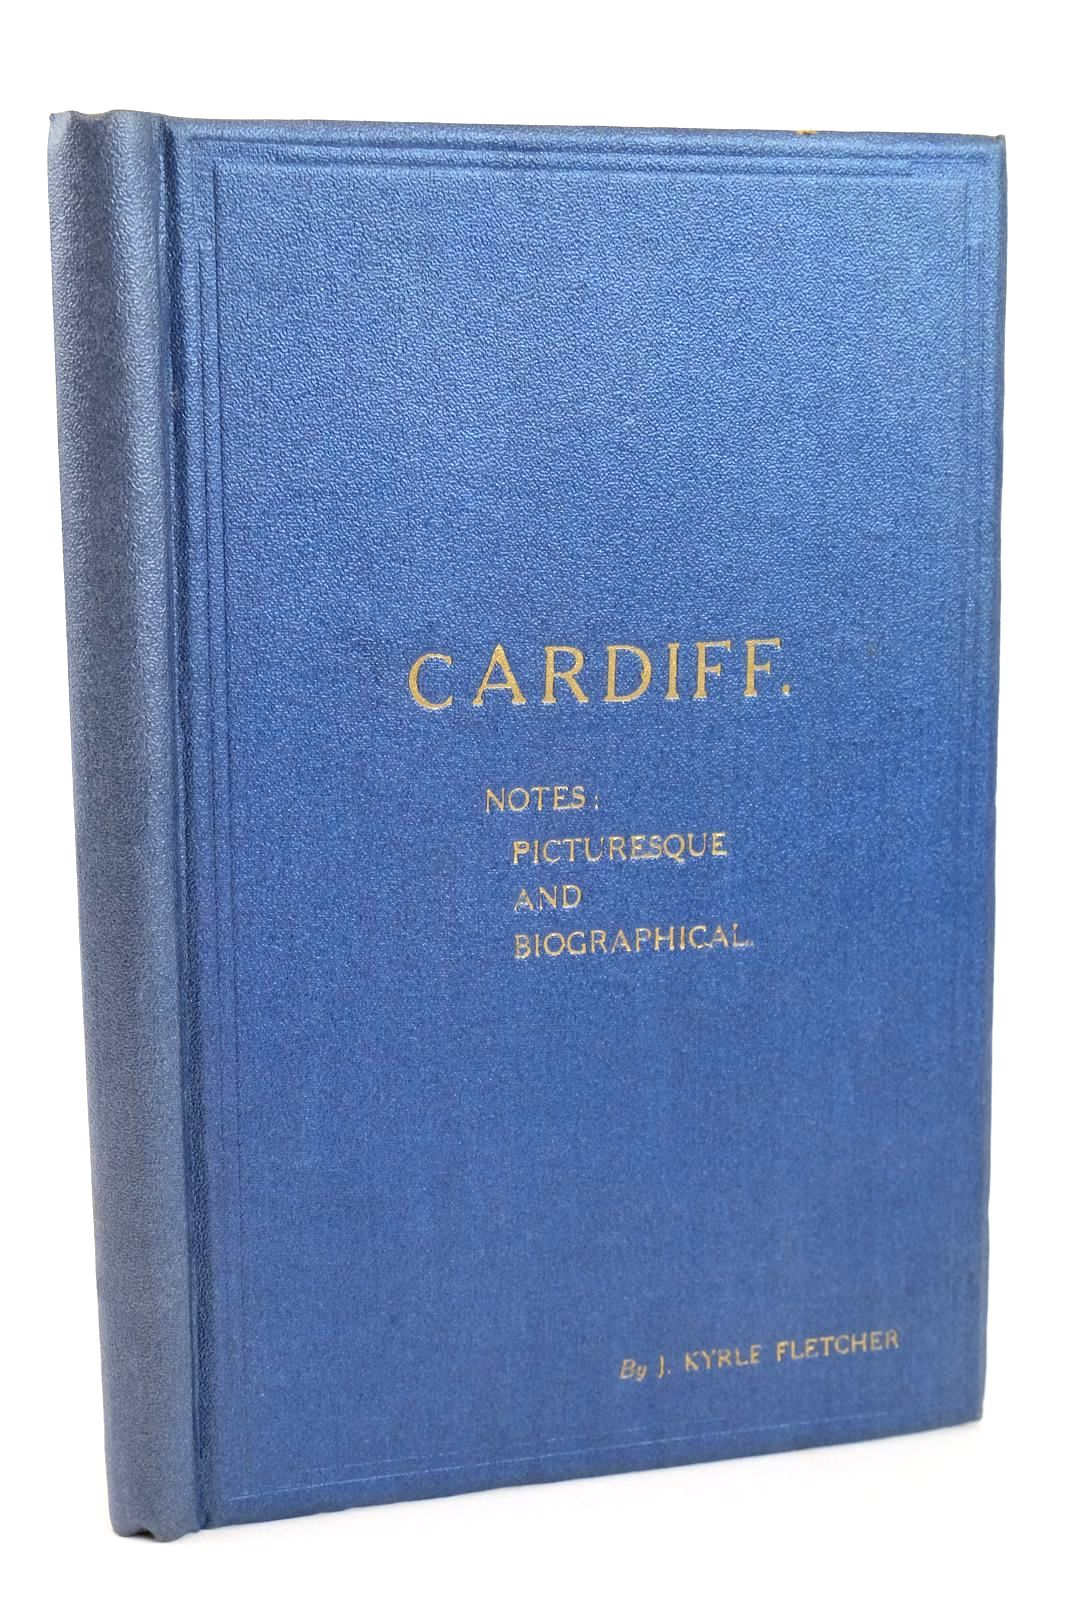 Photo of CARDIFF NOTES PICTURESQUE AND BIOGRAPHICAL- Stock Number: 1318744